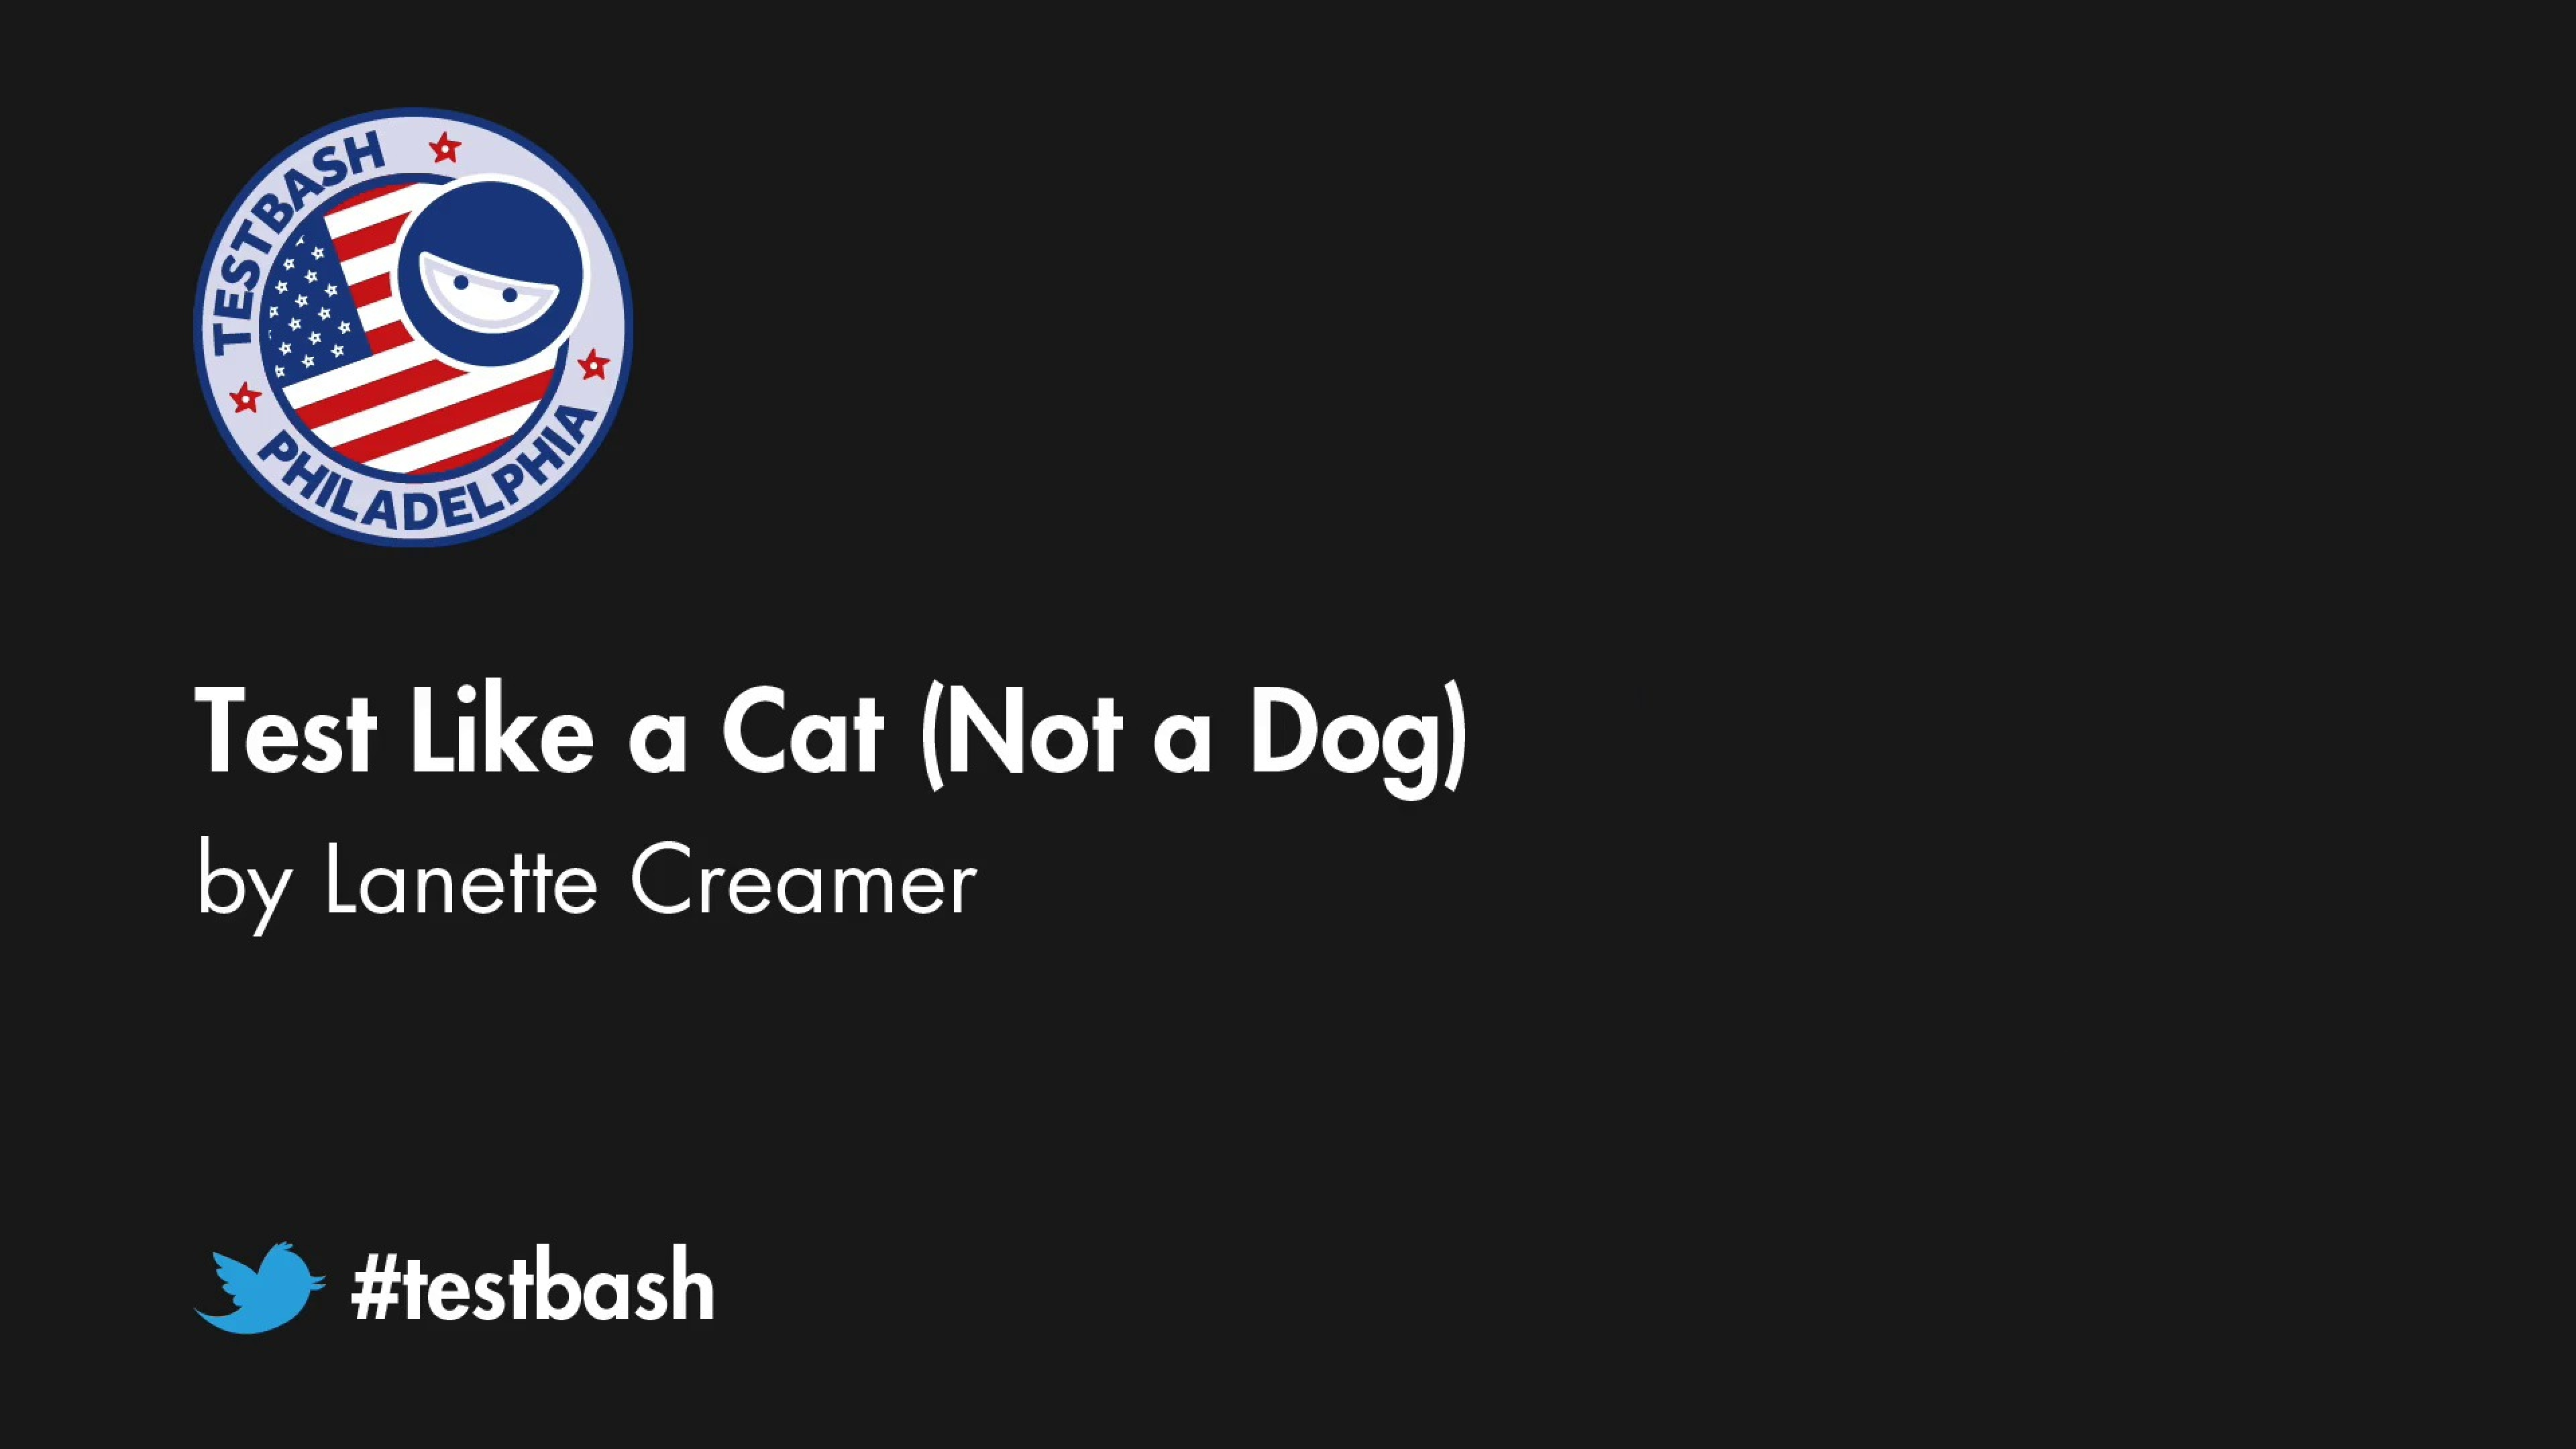 Test Like a Cat (Not a Dog) – Lanette Creamer